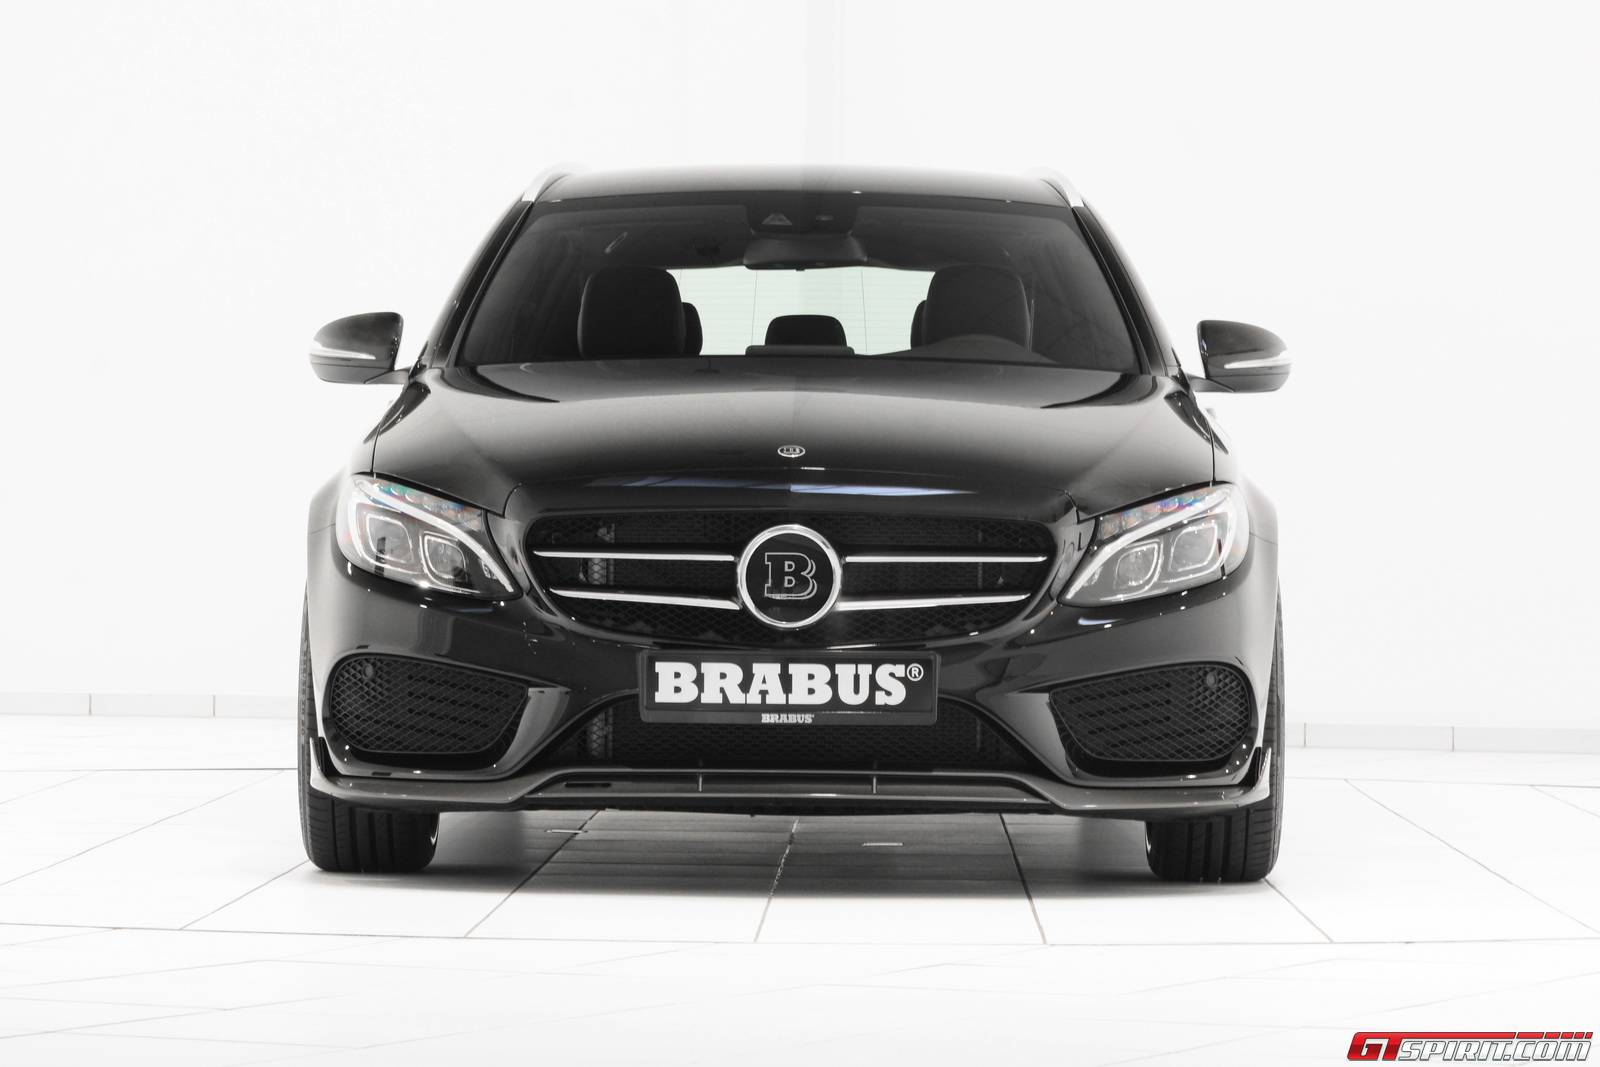 2018 Brabus Mercedes Benz C Class photo - 3